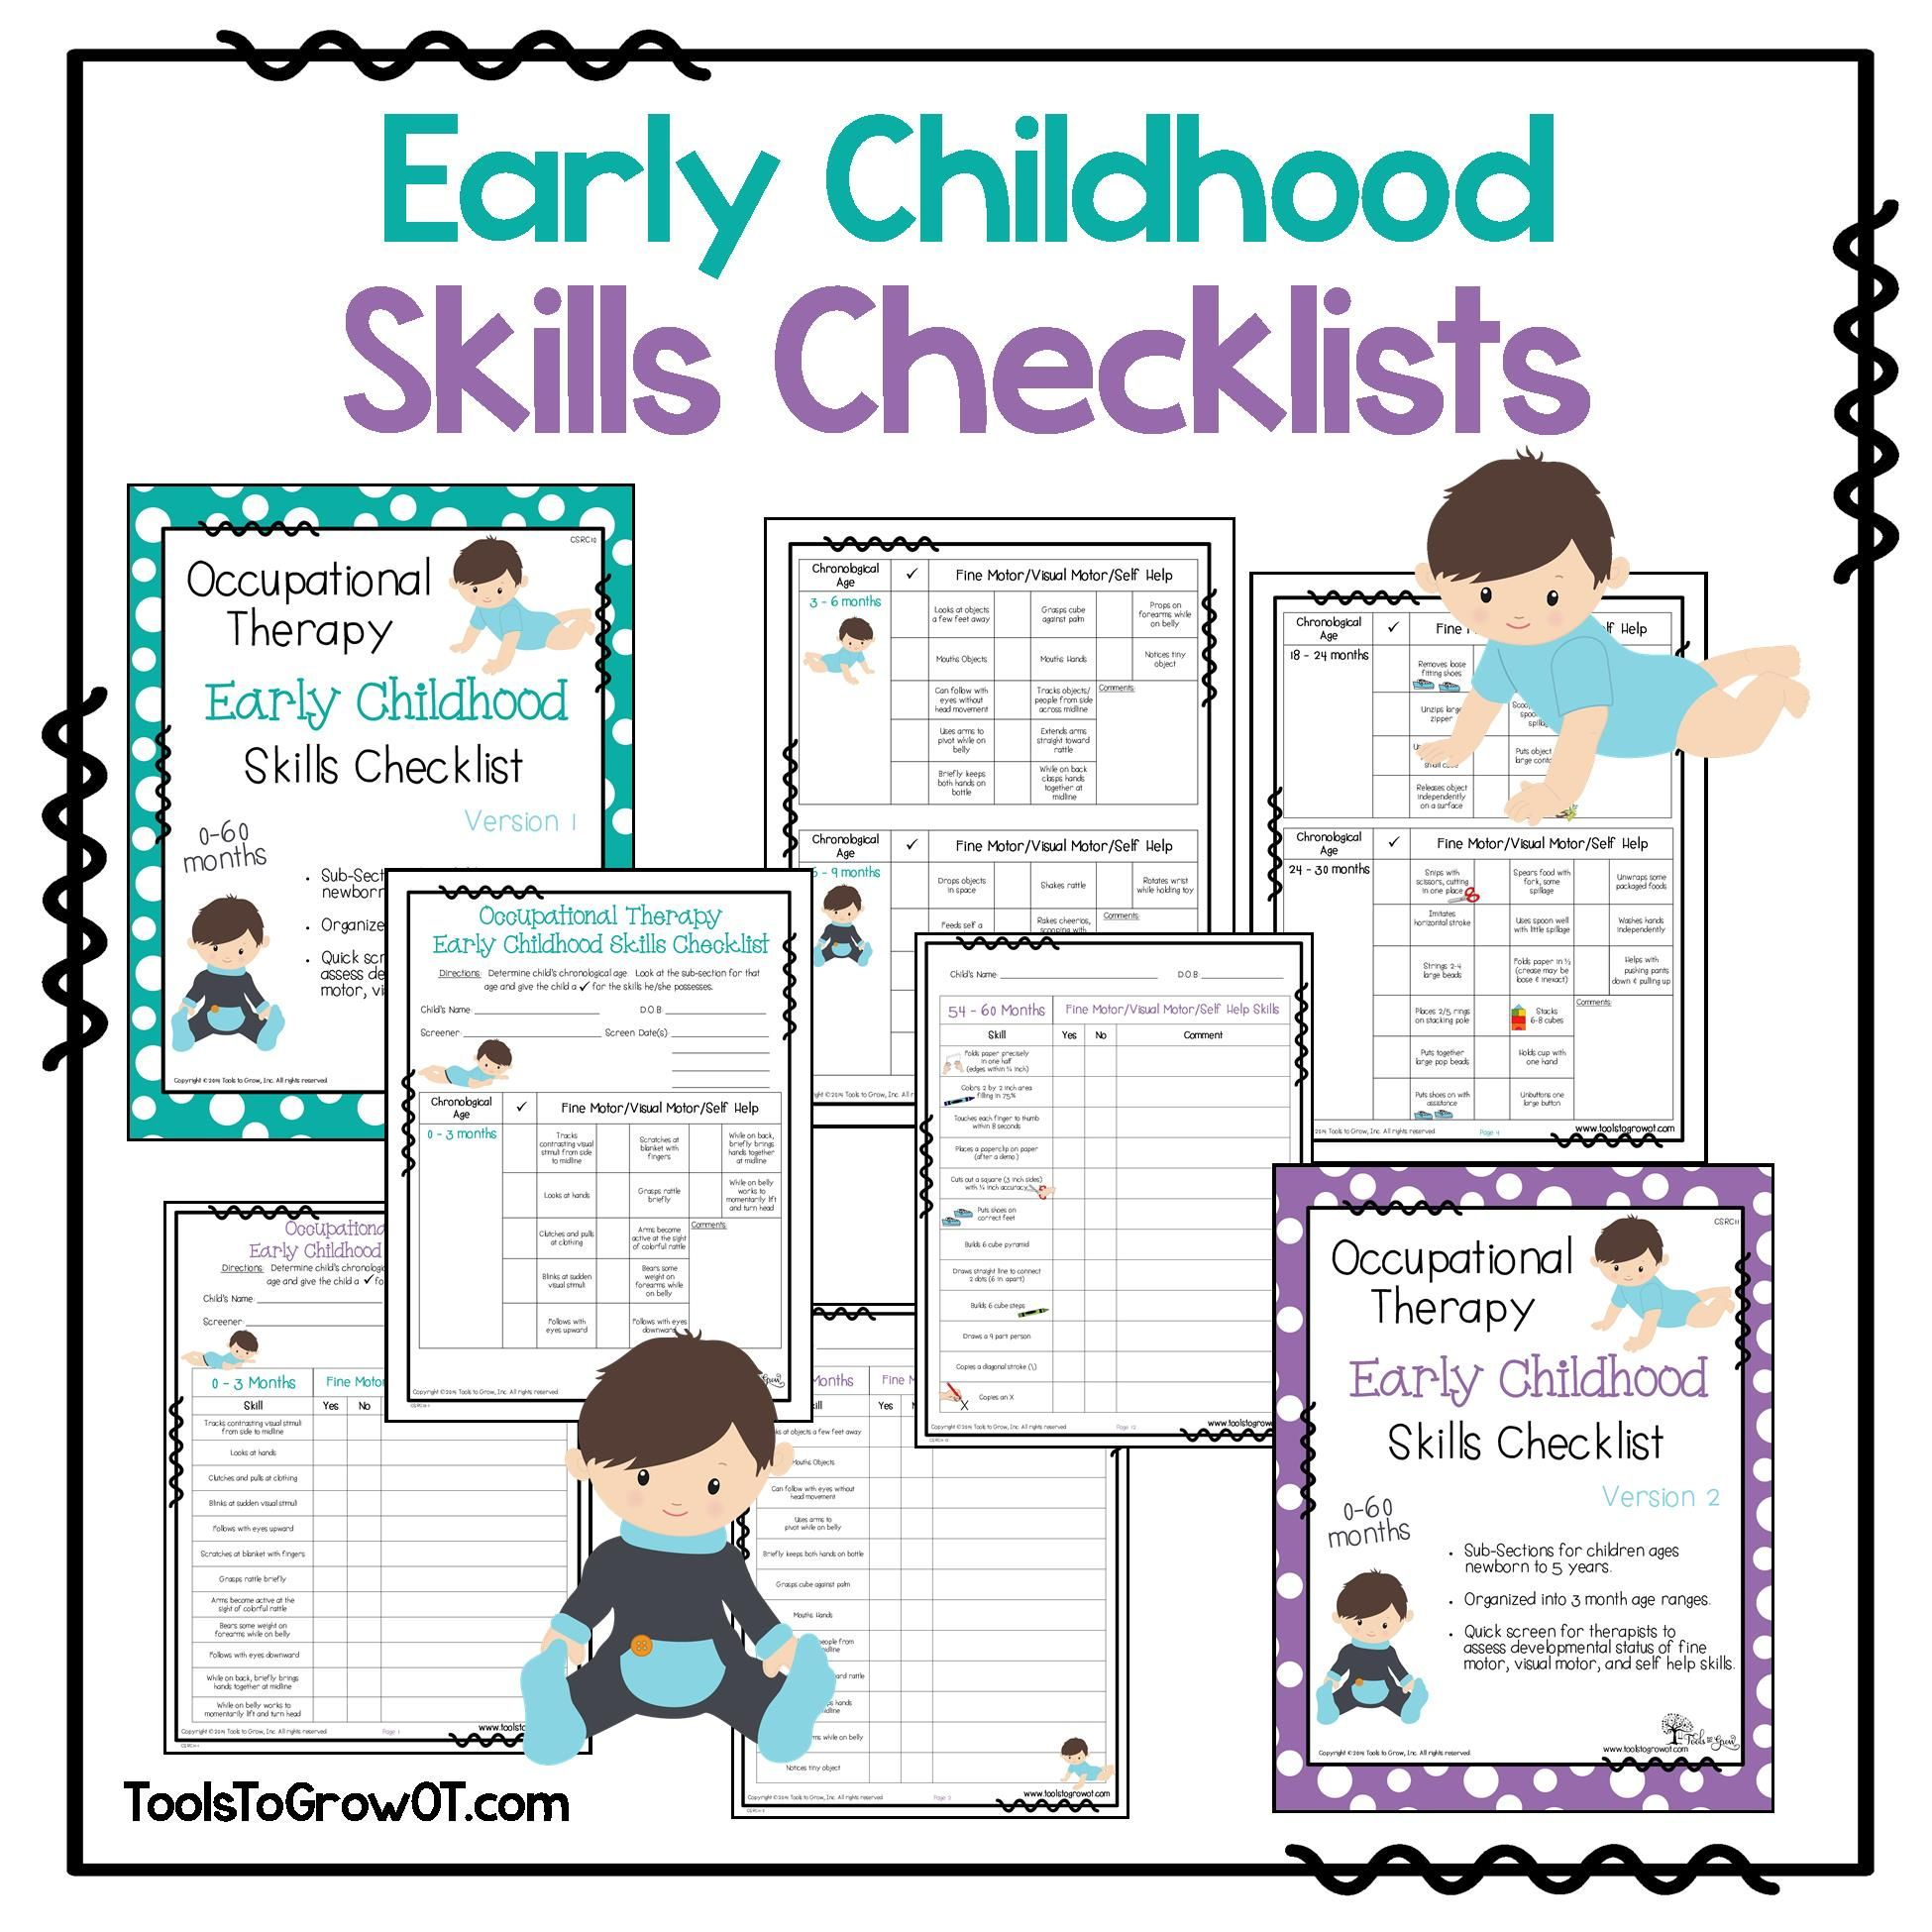 Early Childhood Skills Checklists